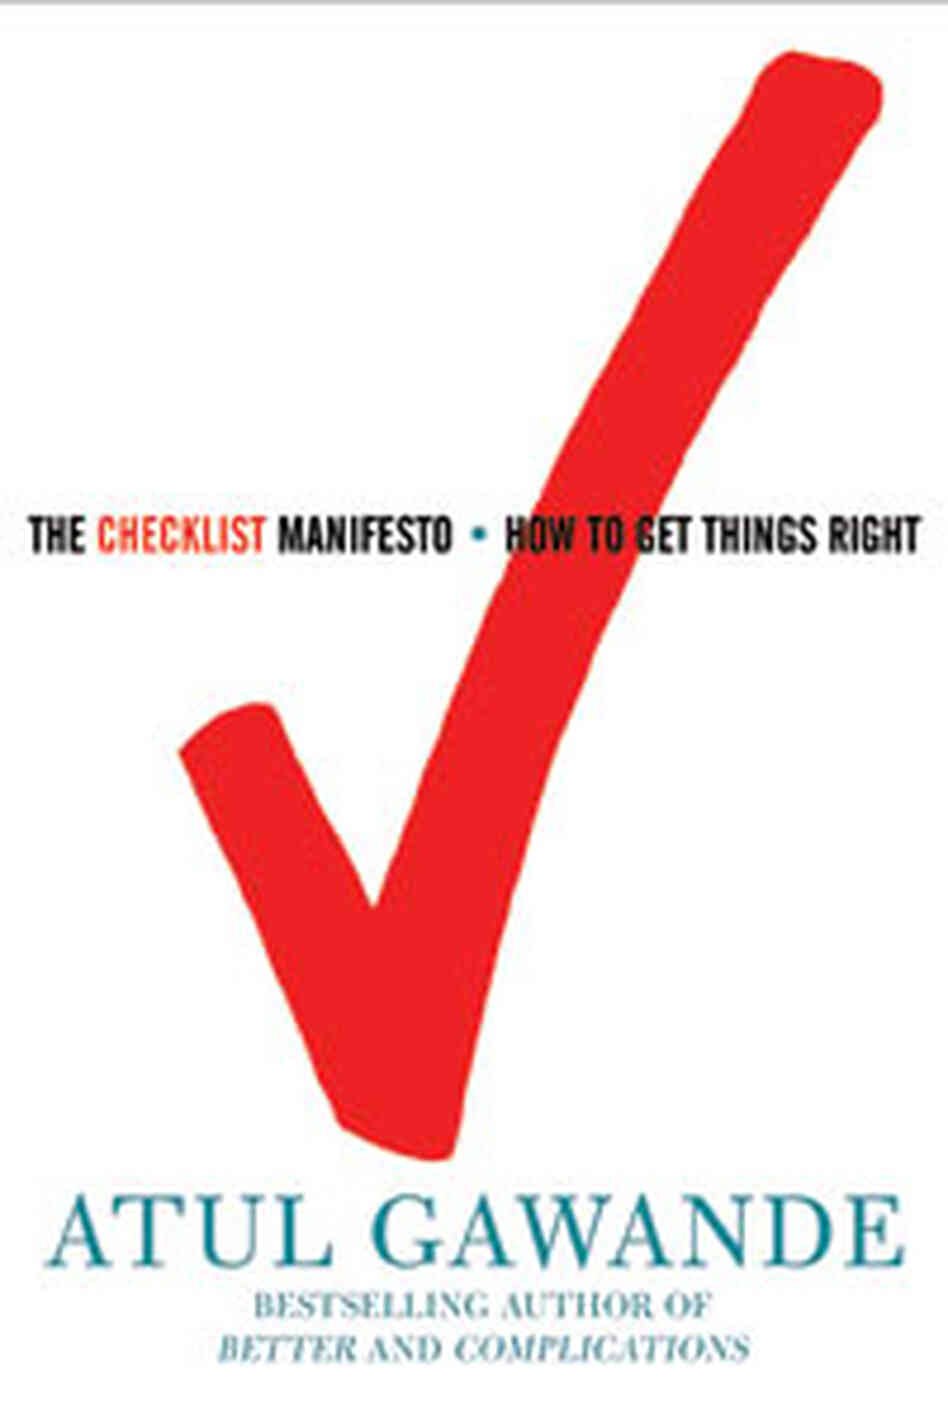 'The Checklist Manifesto' Cover